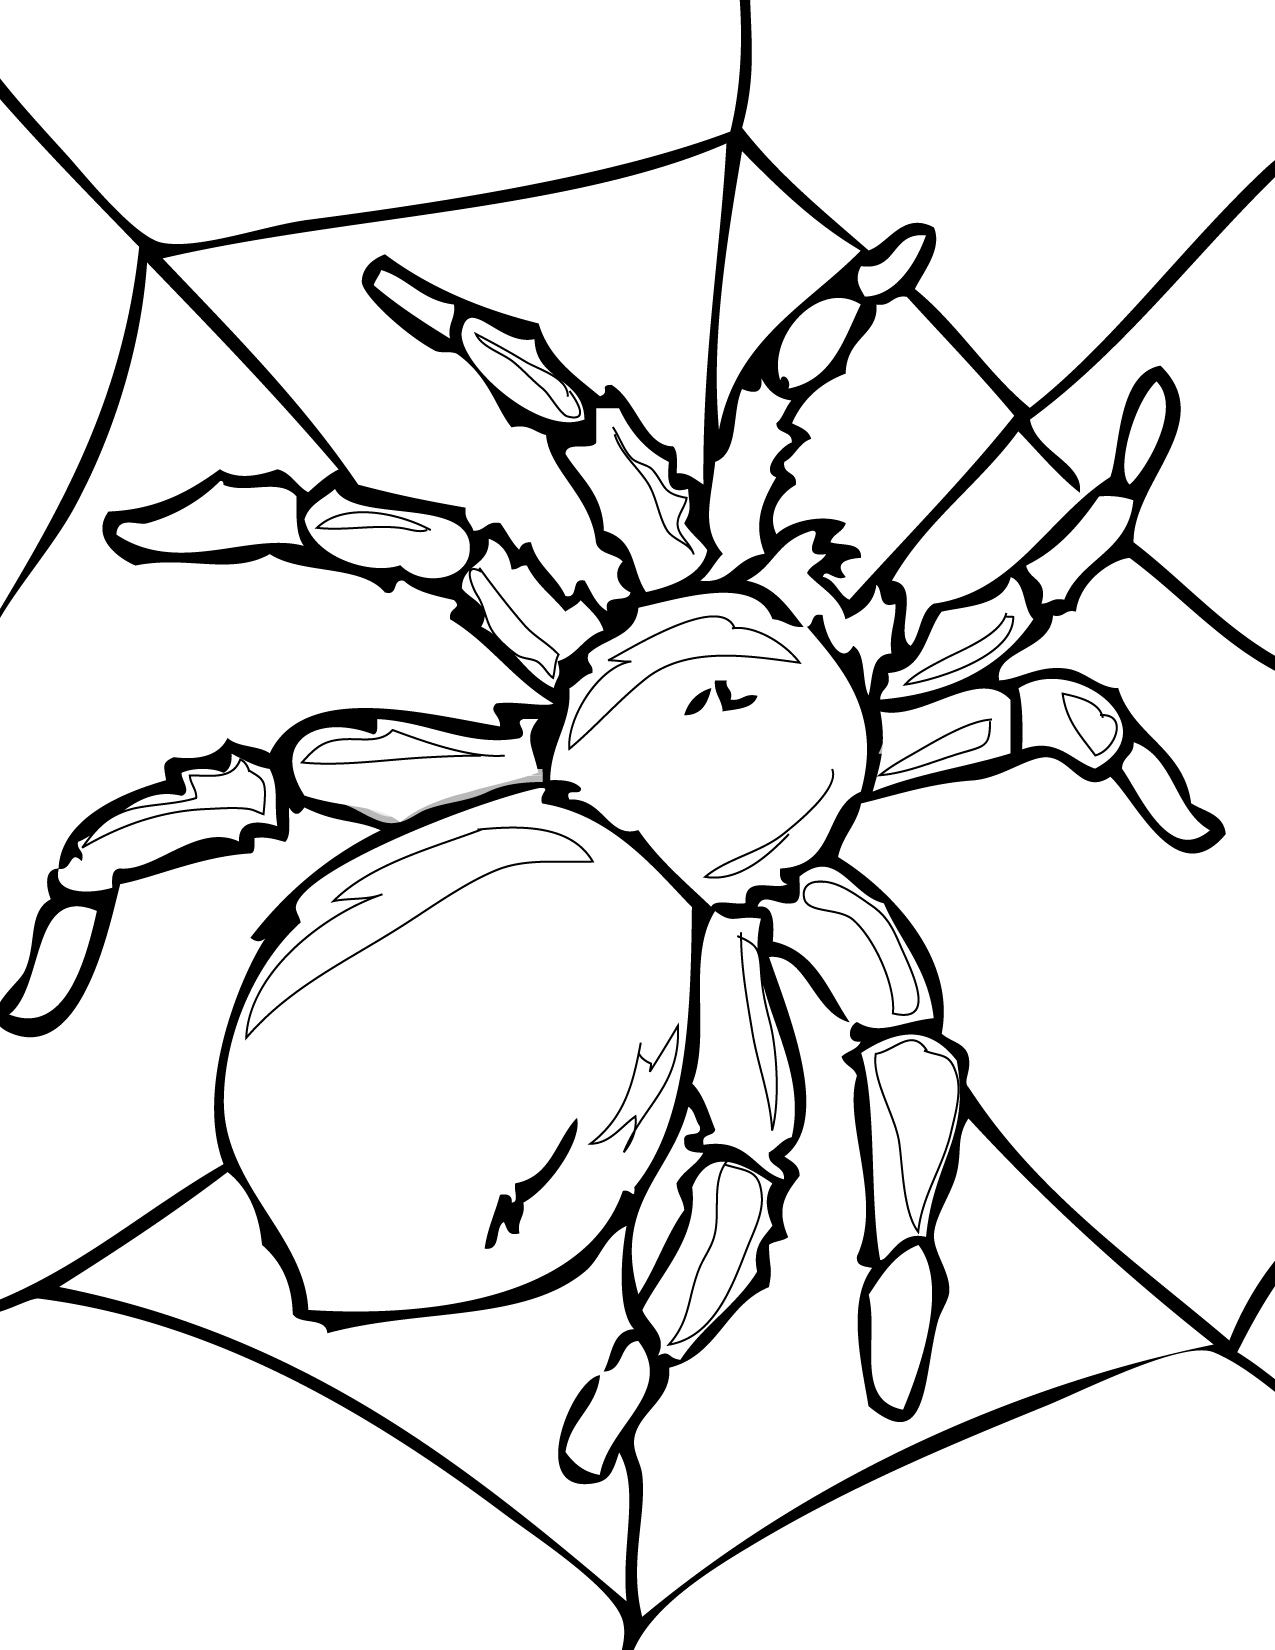 Outline Of A Spider